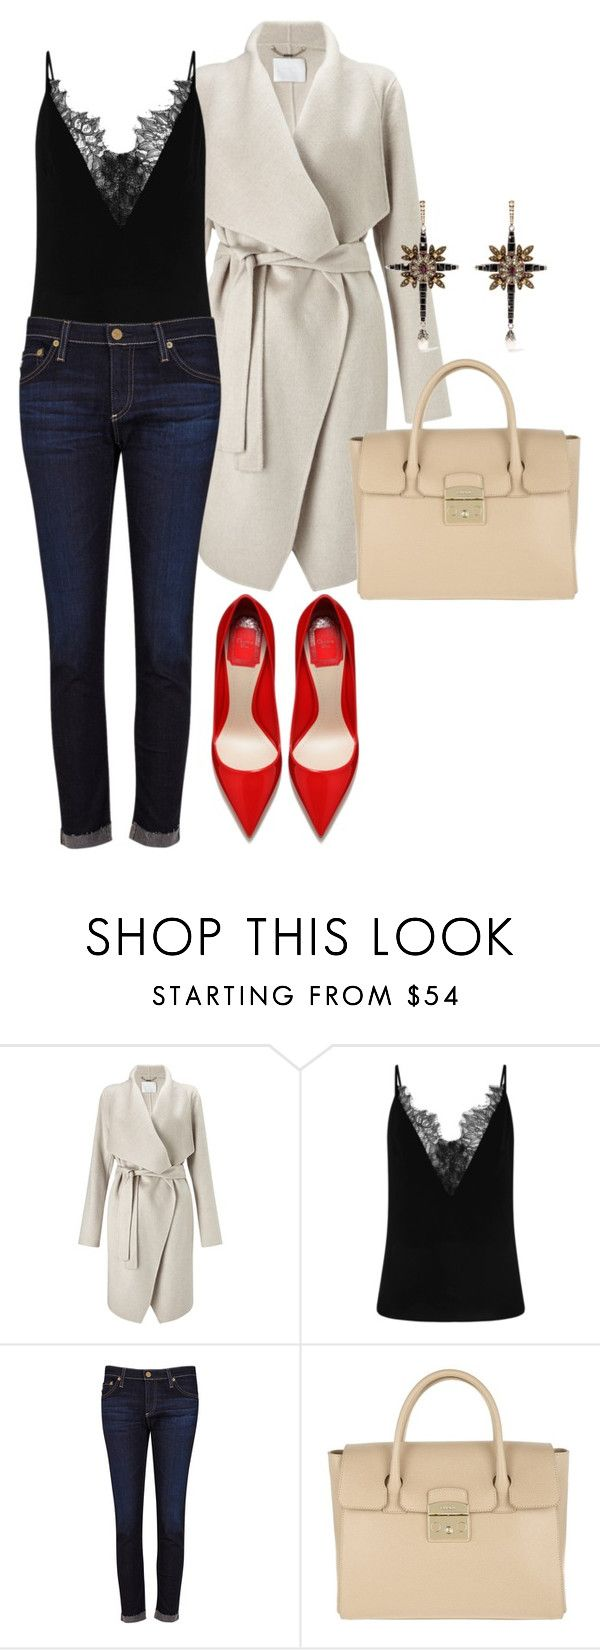 """""""#594"""" by tubbie ❤ liked on Polyvore featuring Finesse, AG Adriano Goldschmied, Furla and Alexander McQueen"""